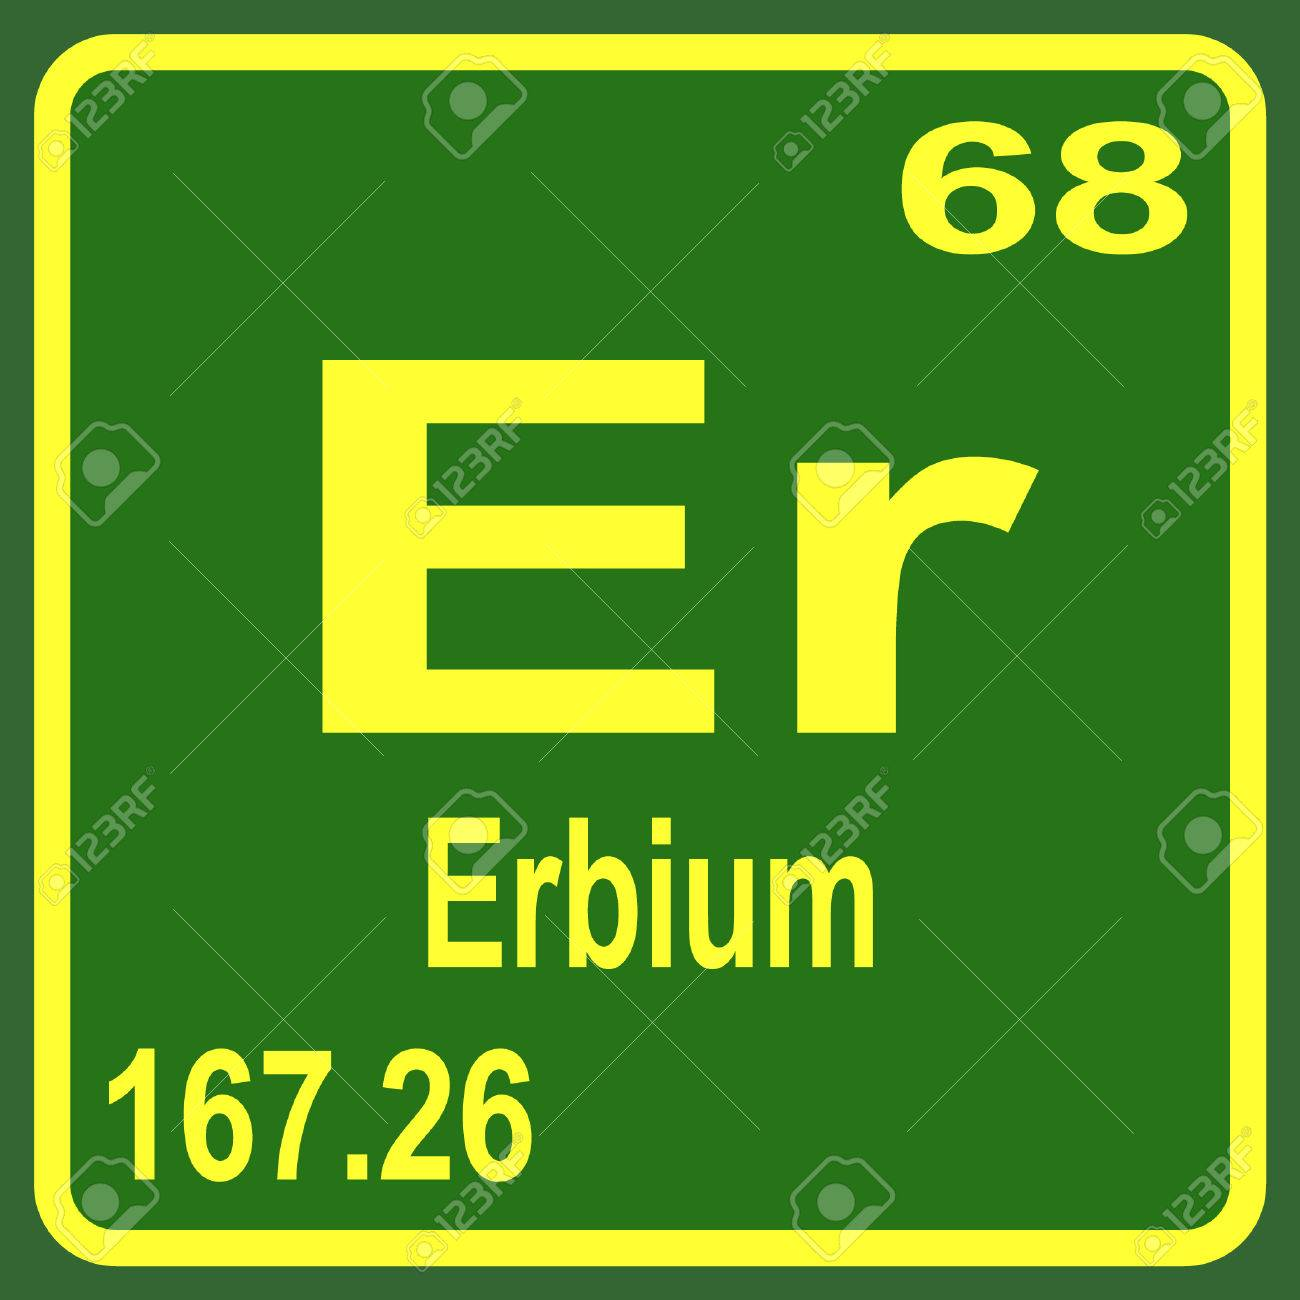 Er element crane humidifier no mist 5th element periodic table choice image periodic table images 53900669 periodic table of elements erbium stock gamestrikefo Image collections